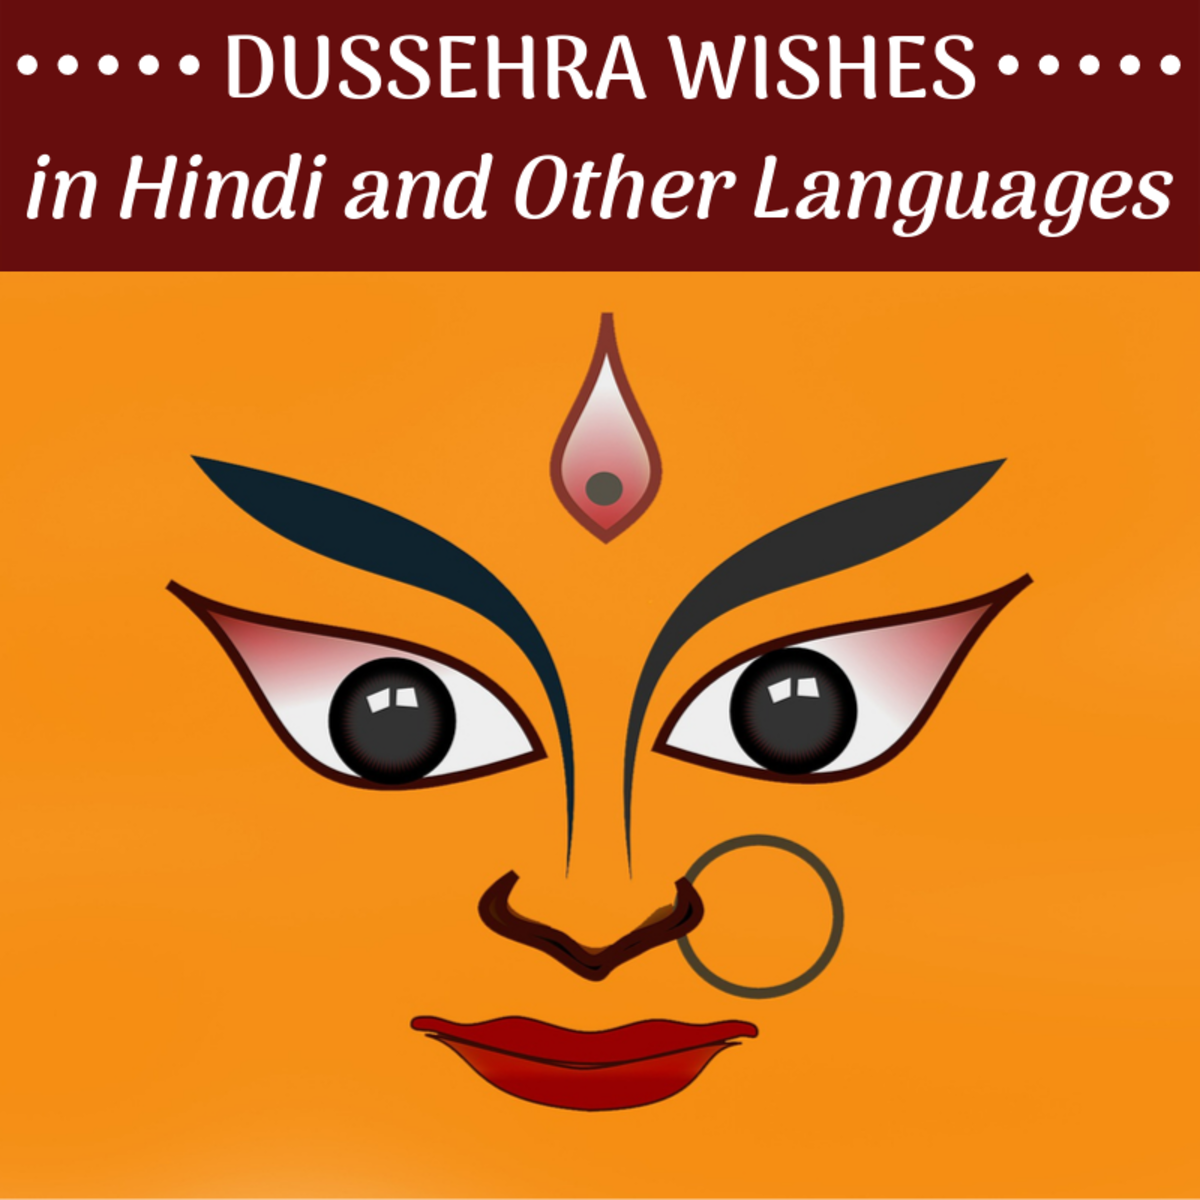 Wish your loved ones a happy Dussehra in their native or regional language.